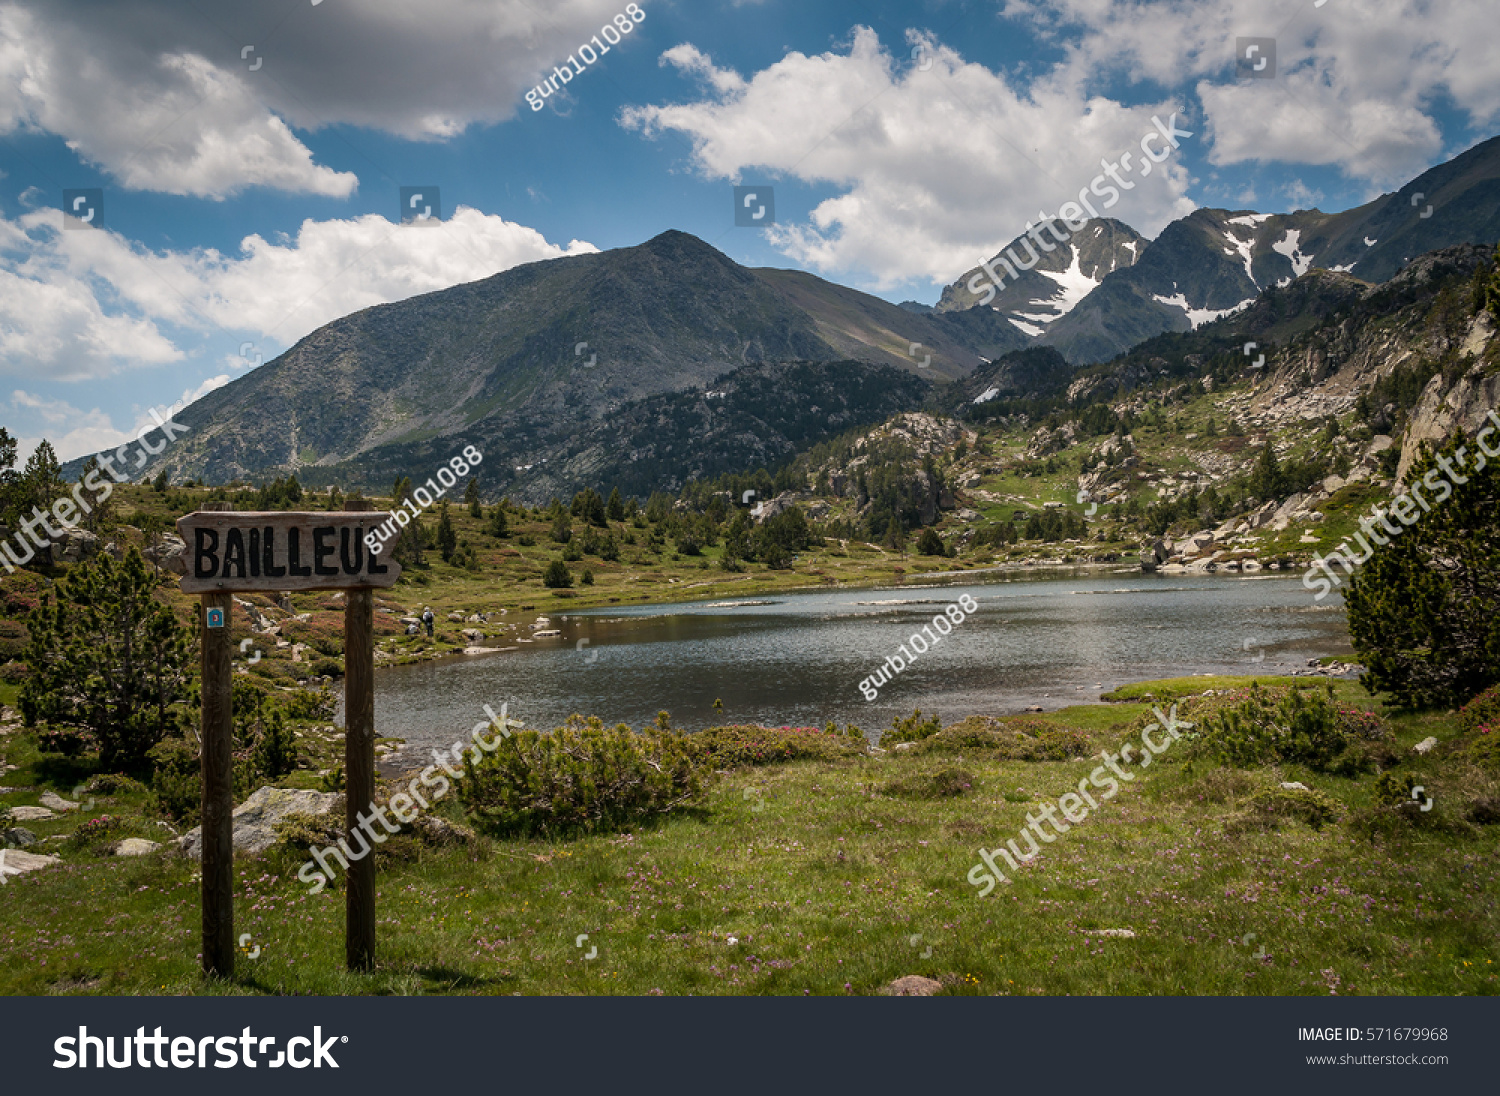 Les bouillouses lakes france stock photo 571679968 shutterstock les bouillouses lakes in france sciox Image collections